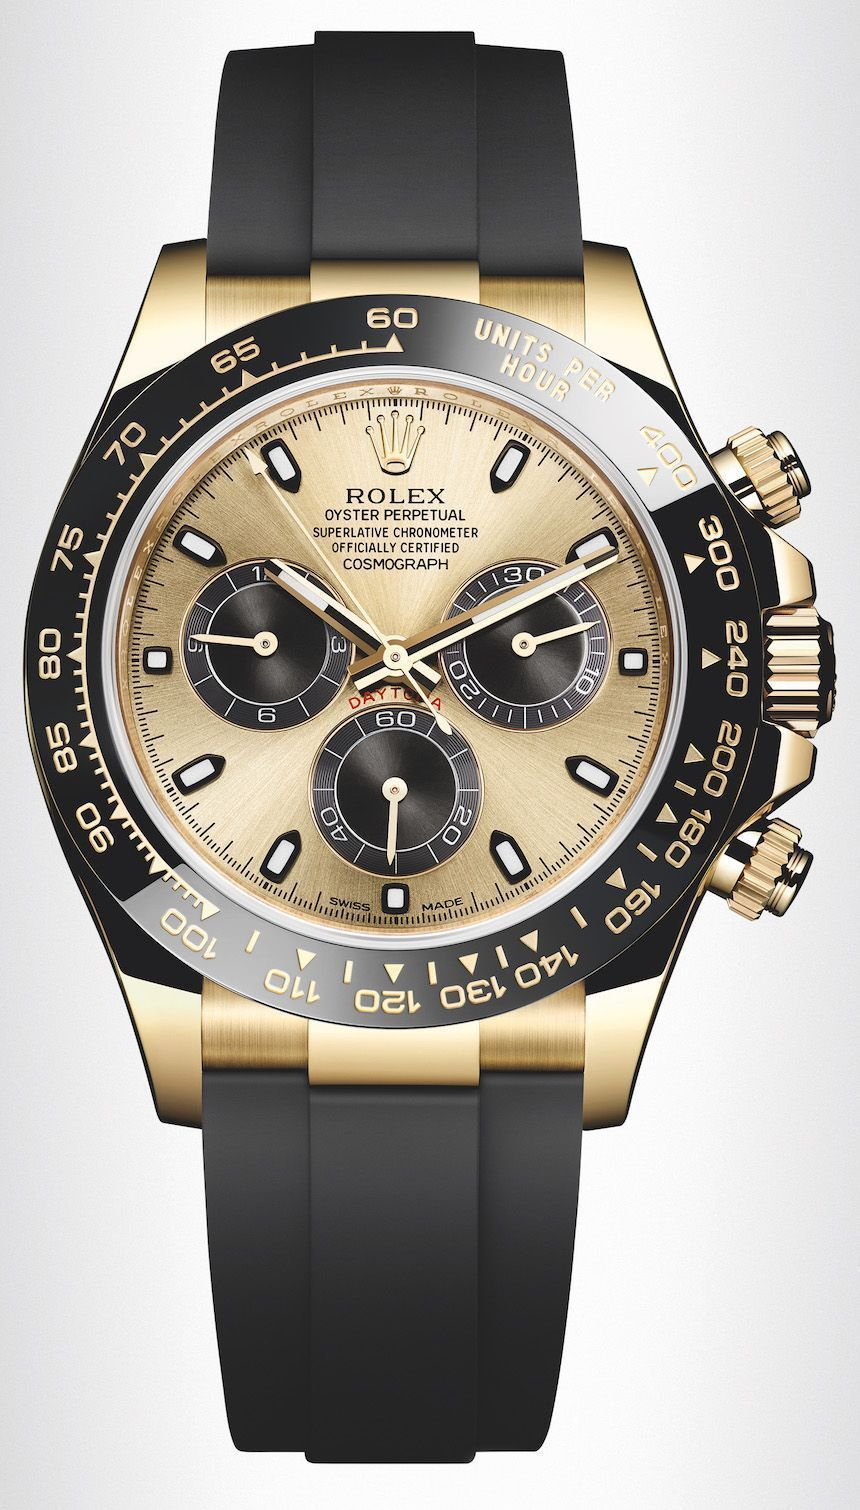 8aa3b62a8a7 New Rolex Cosmograph Daytona Watches In Gold With Oysterflex Rubber Strap  and Ceramic Bezel For 2017 Quality watches from around the wold at  fantastic ...